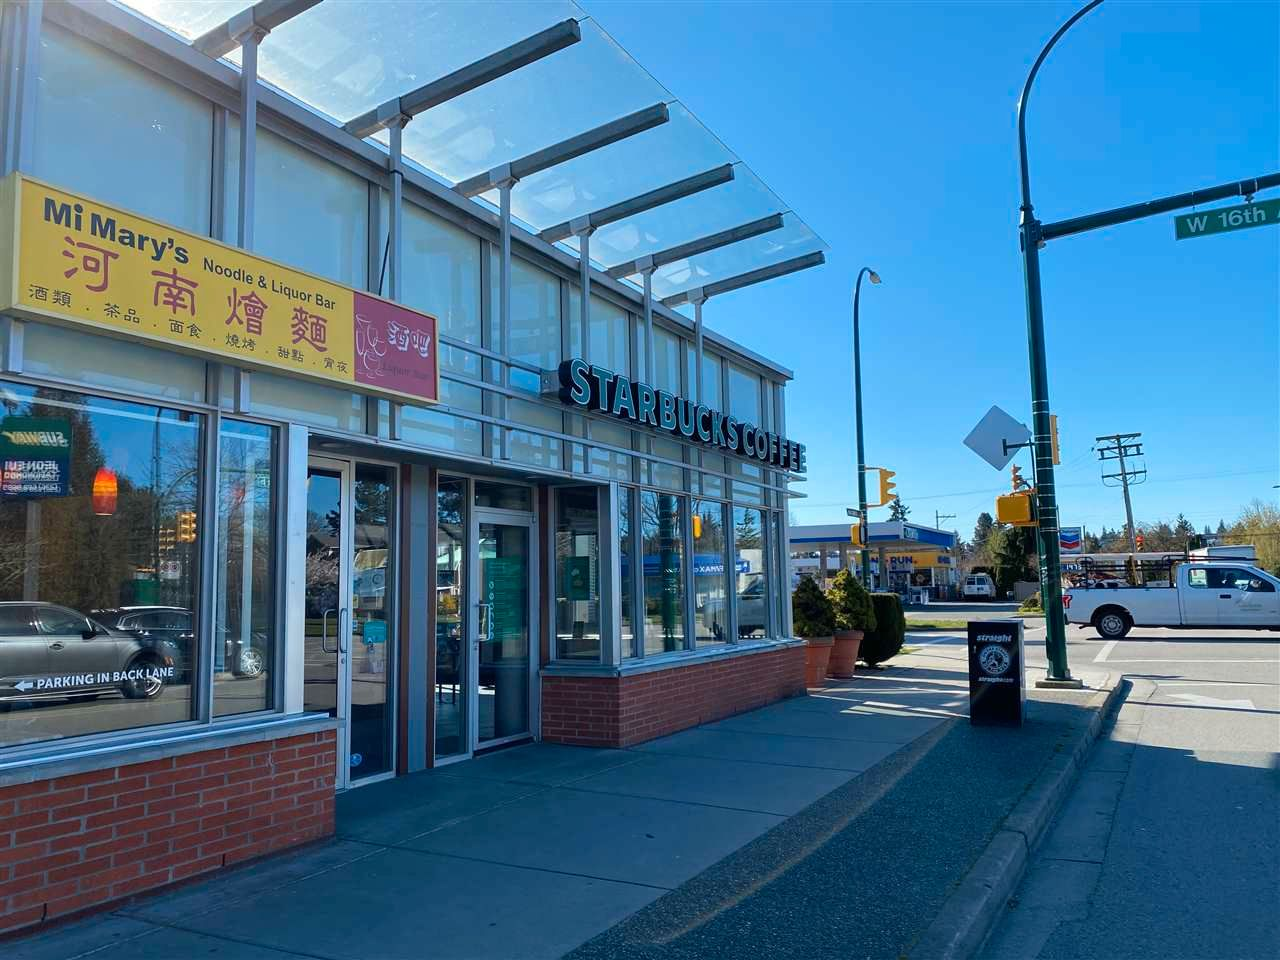 Main Photo: 3188 MACDONALD in Vancouver: Kitsilano Business for sale (Vancouver West)  : MLS®# C8037708